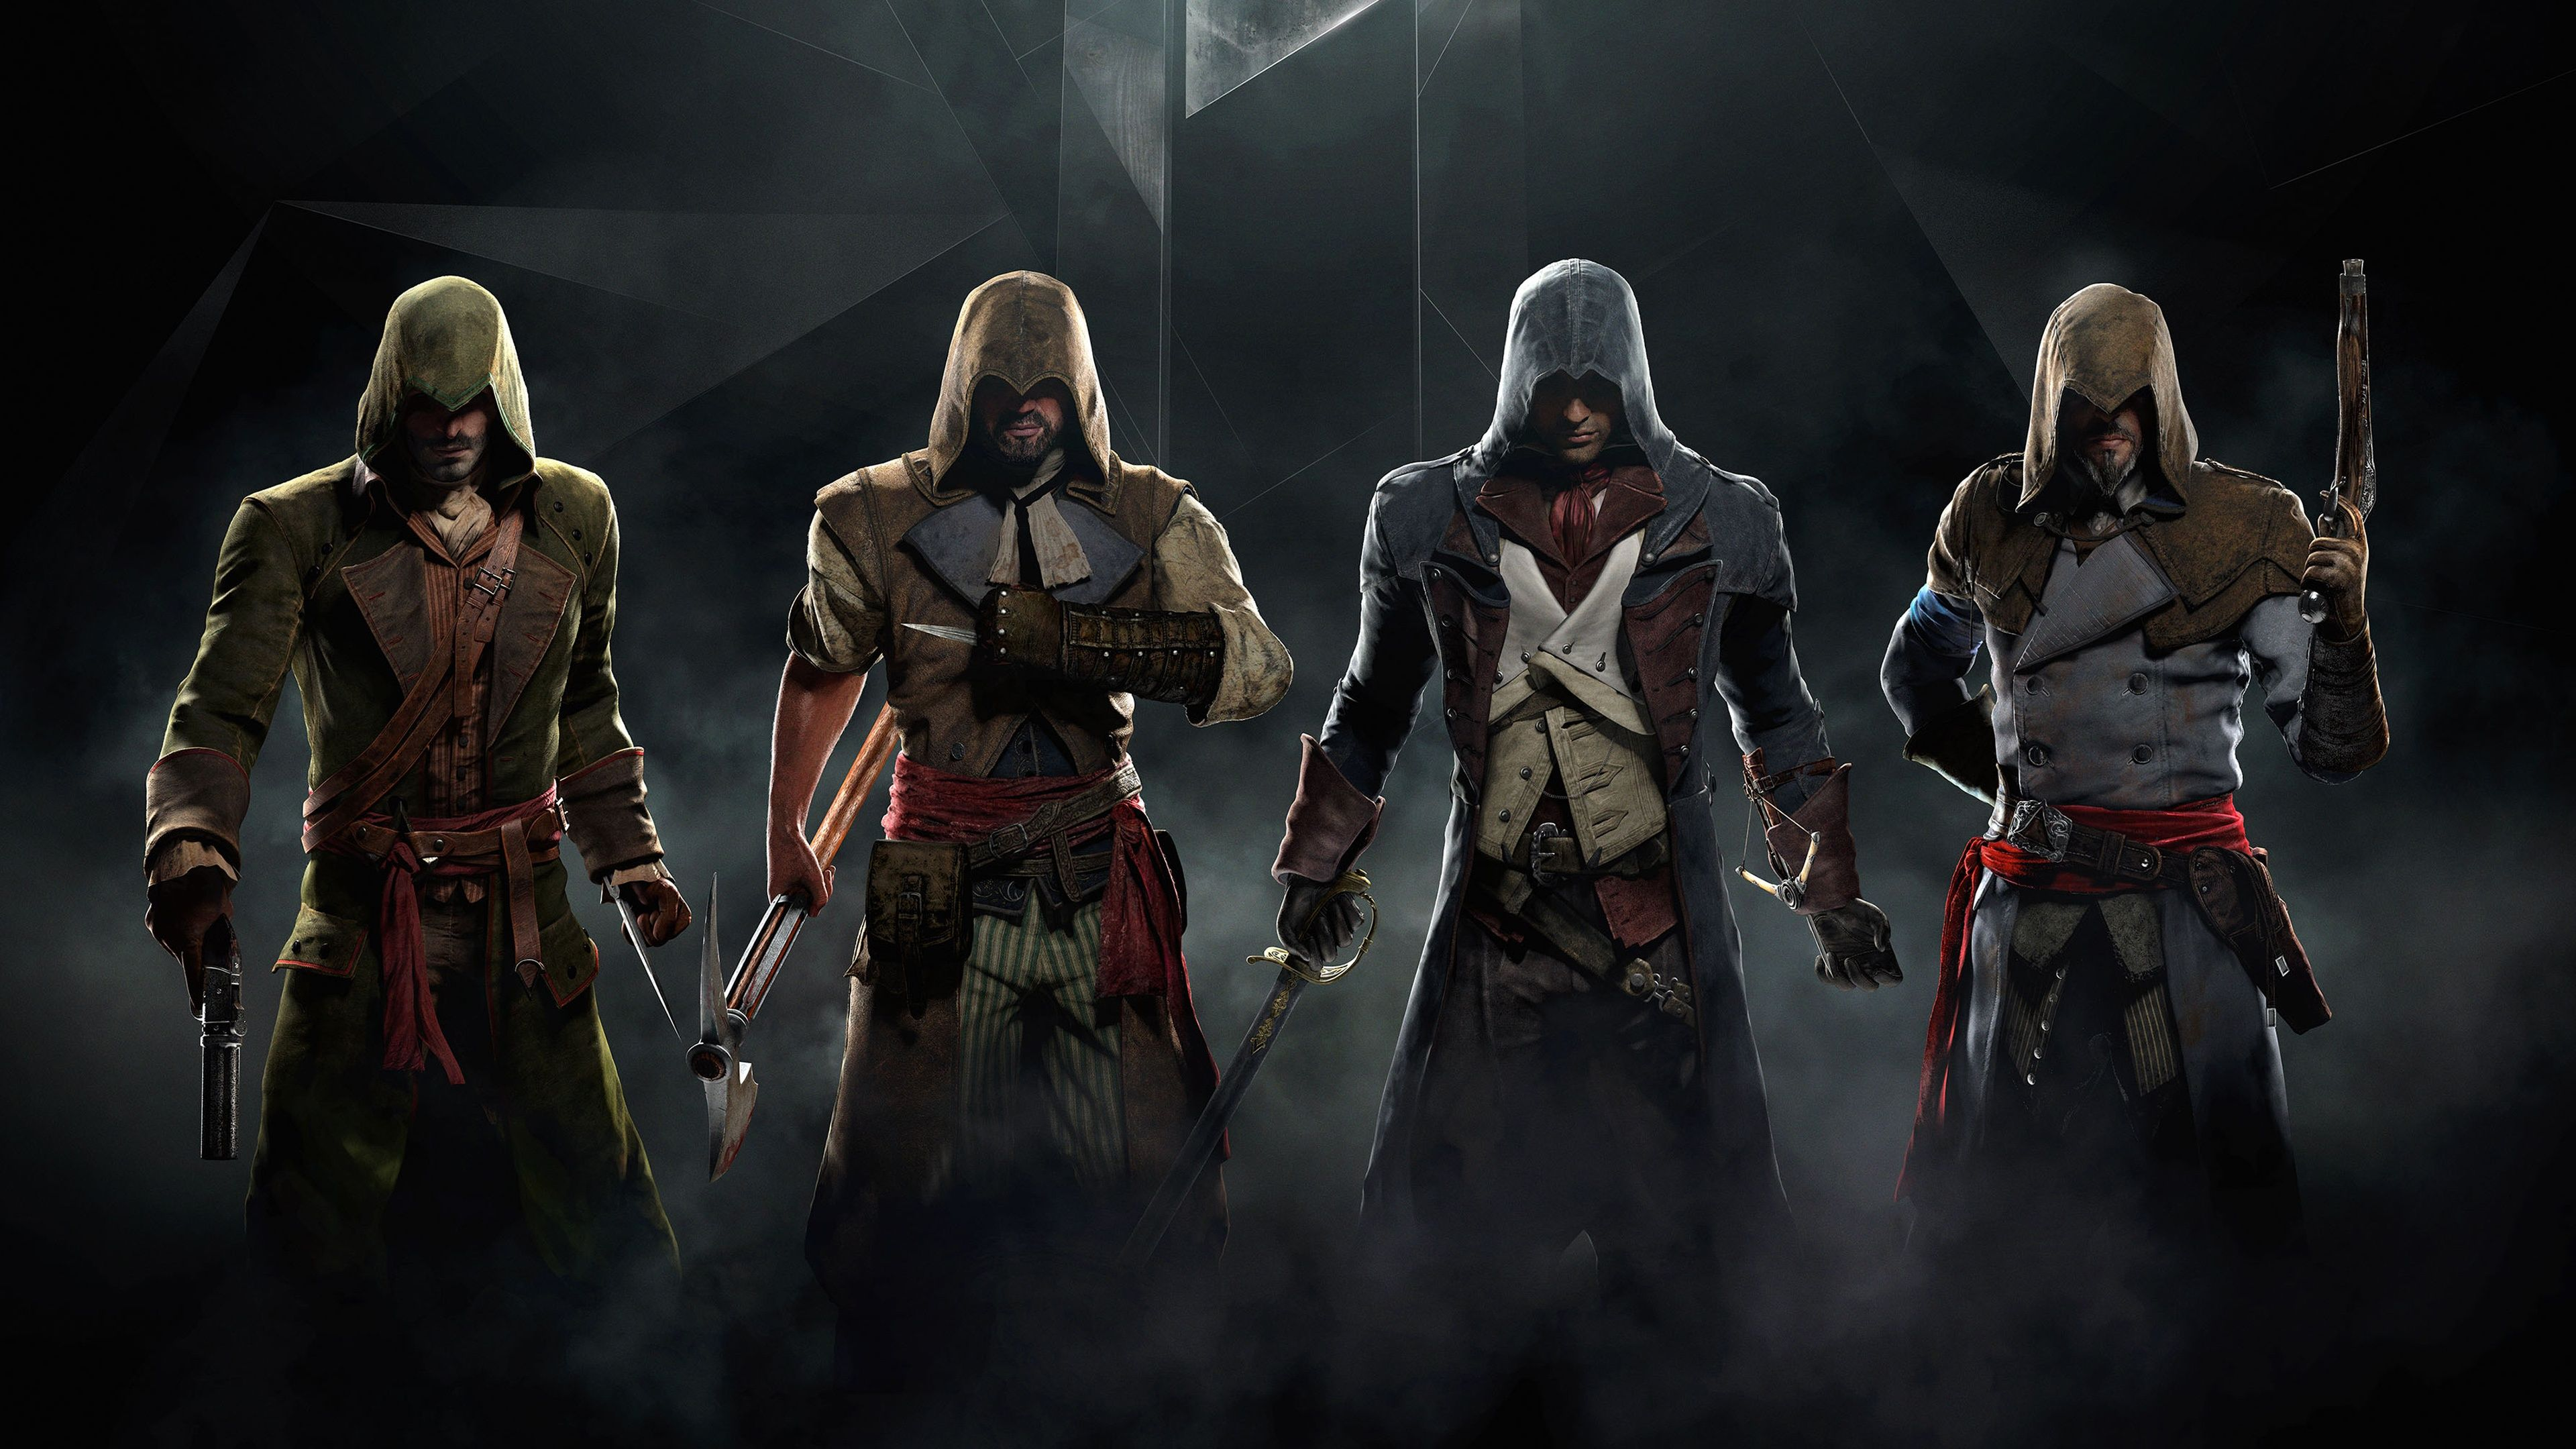 4k resolution assassins creed syndicate hd wallpaper